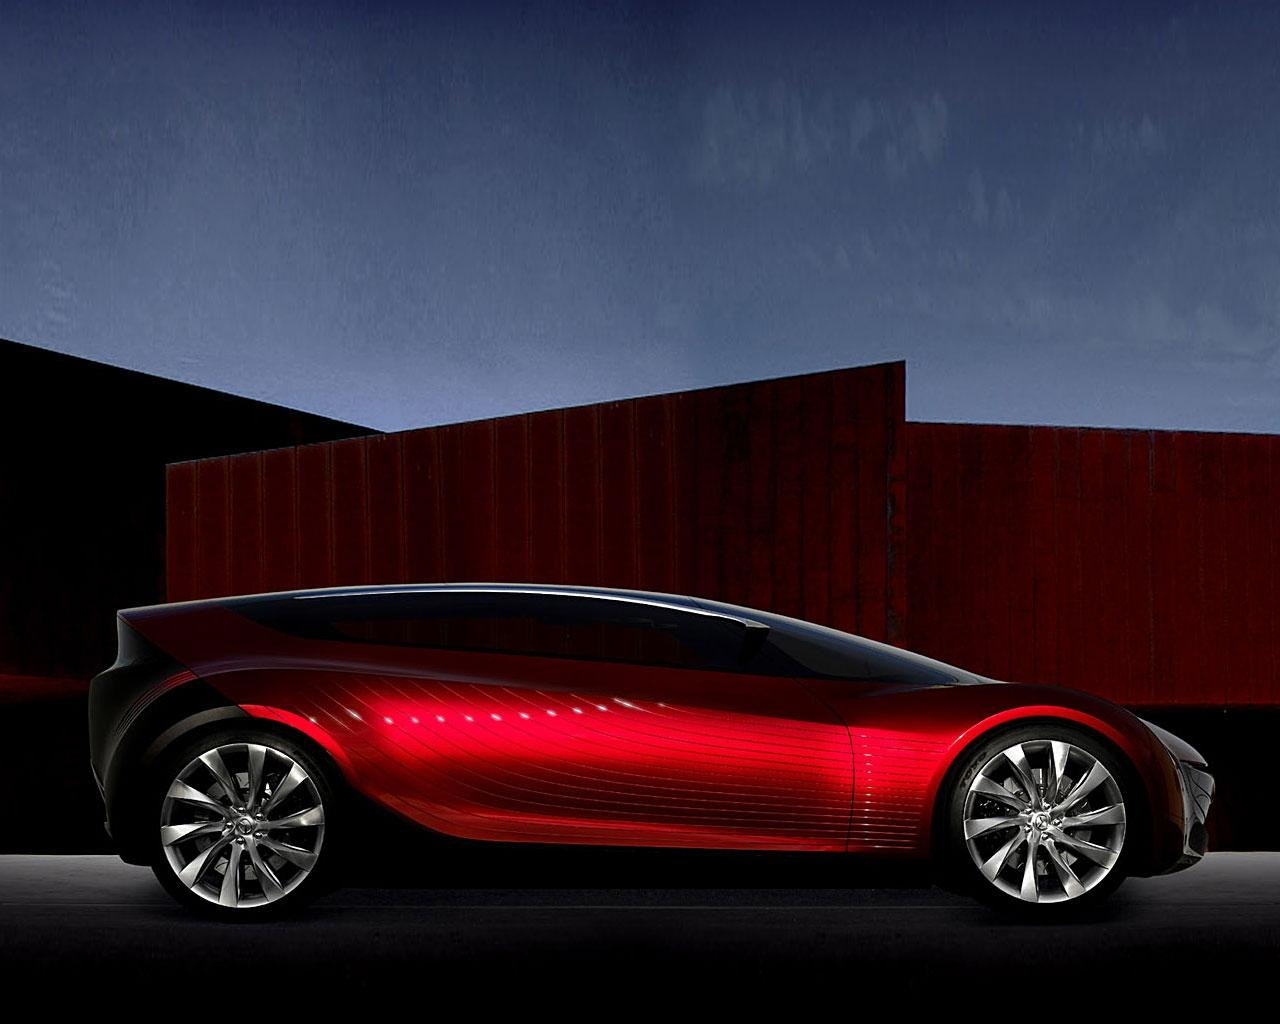 Обои Red Amazing Car 1280x1024